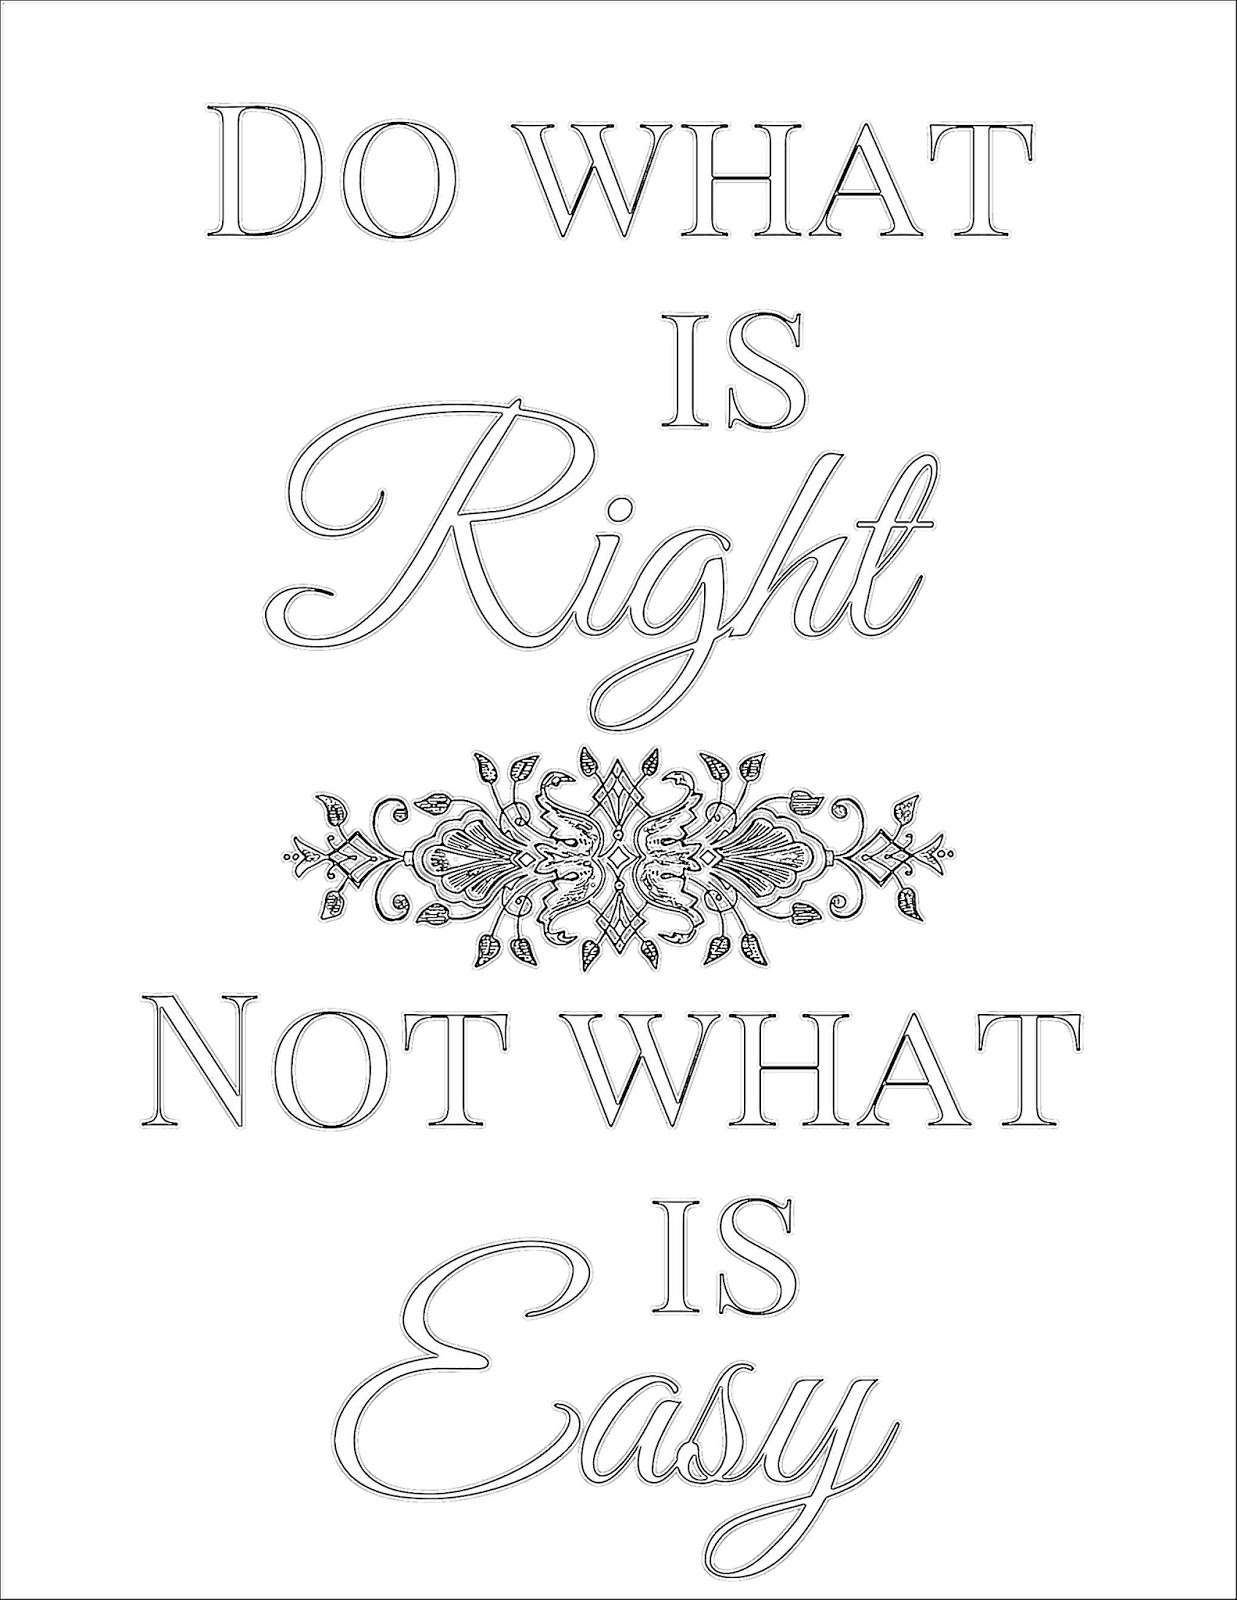 The Prudent Pantry: Do what is right, not what is easy